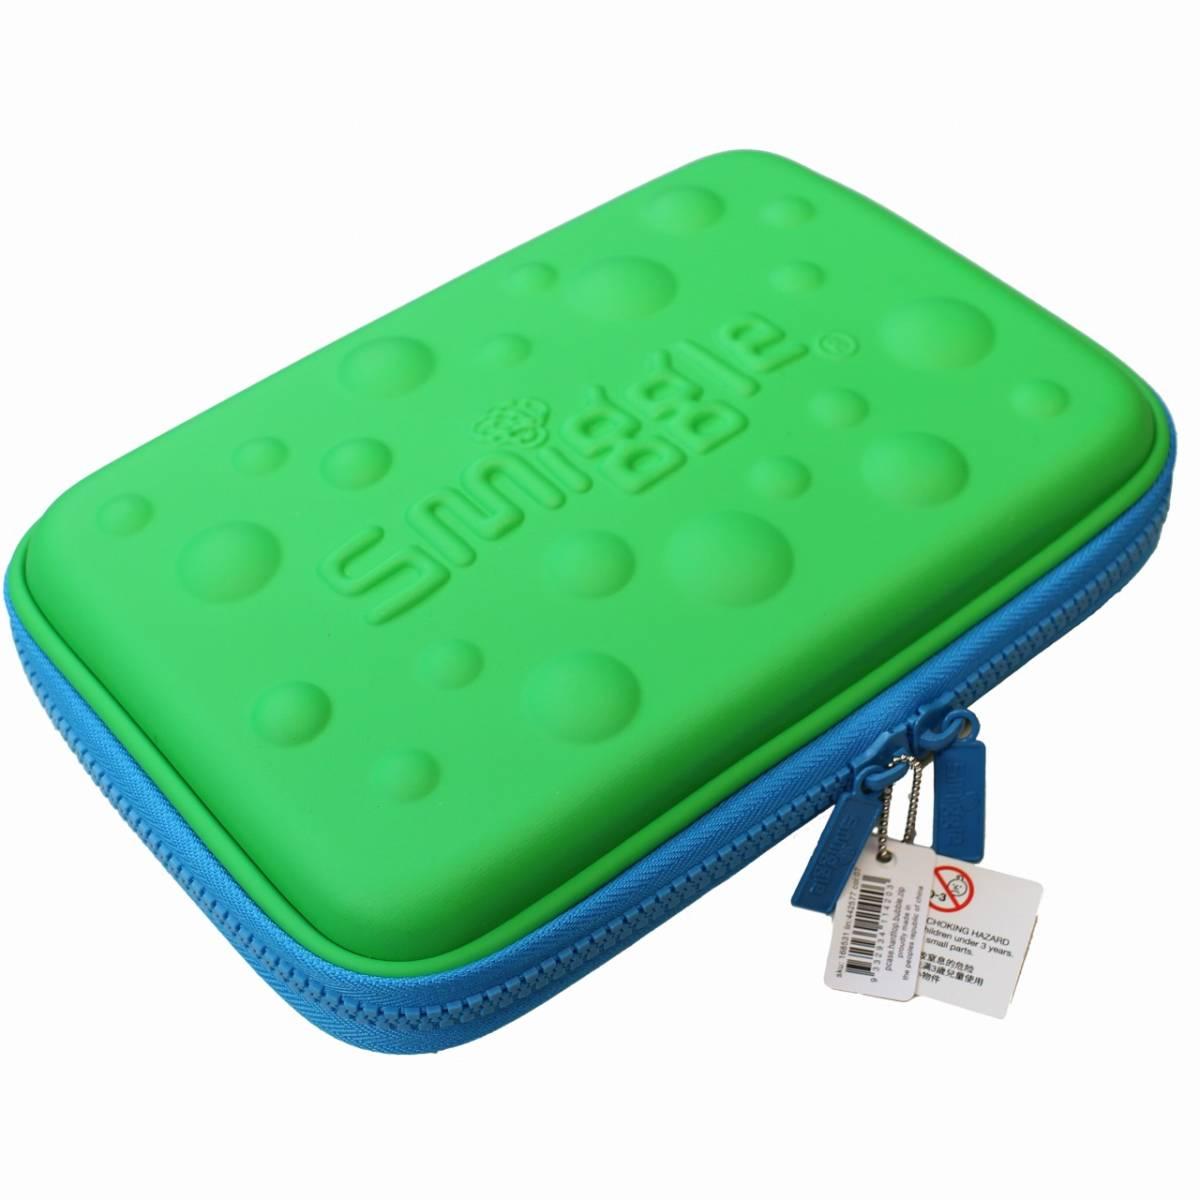 smiggle スミグル 筆箱と文房具 ギフトセットB Bubble Hardtop Crazy Gift Pack (Green) 新品 送料込み メイクケース ポーチ コスメケース_画像3